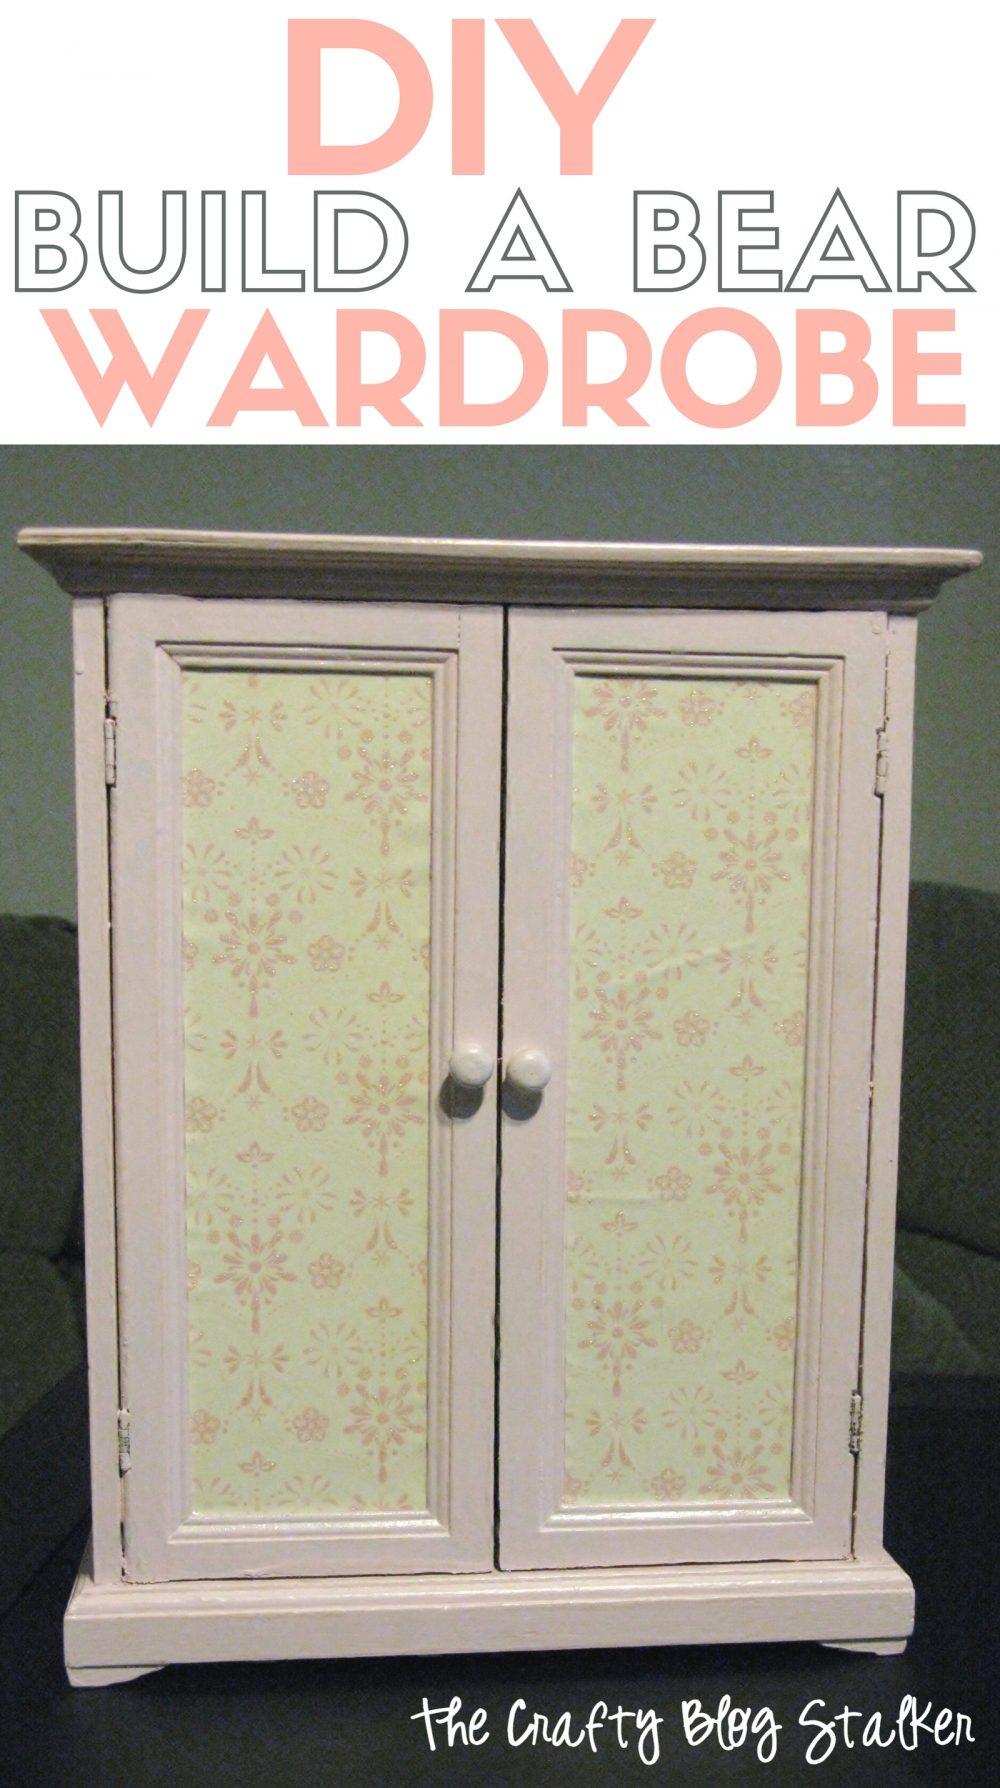 I'll show you how I repurposed this yard sale jewelry box into a toy wardrobe closet for Build a Bear clothes. A simple DIY craft tutorial idea.